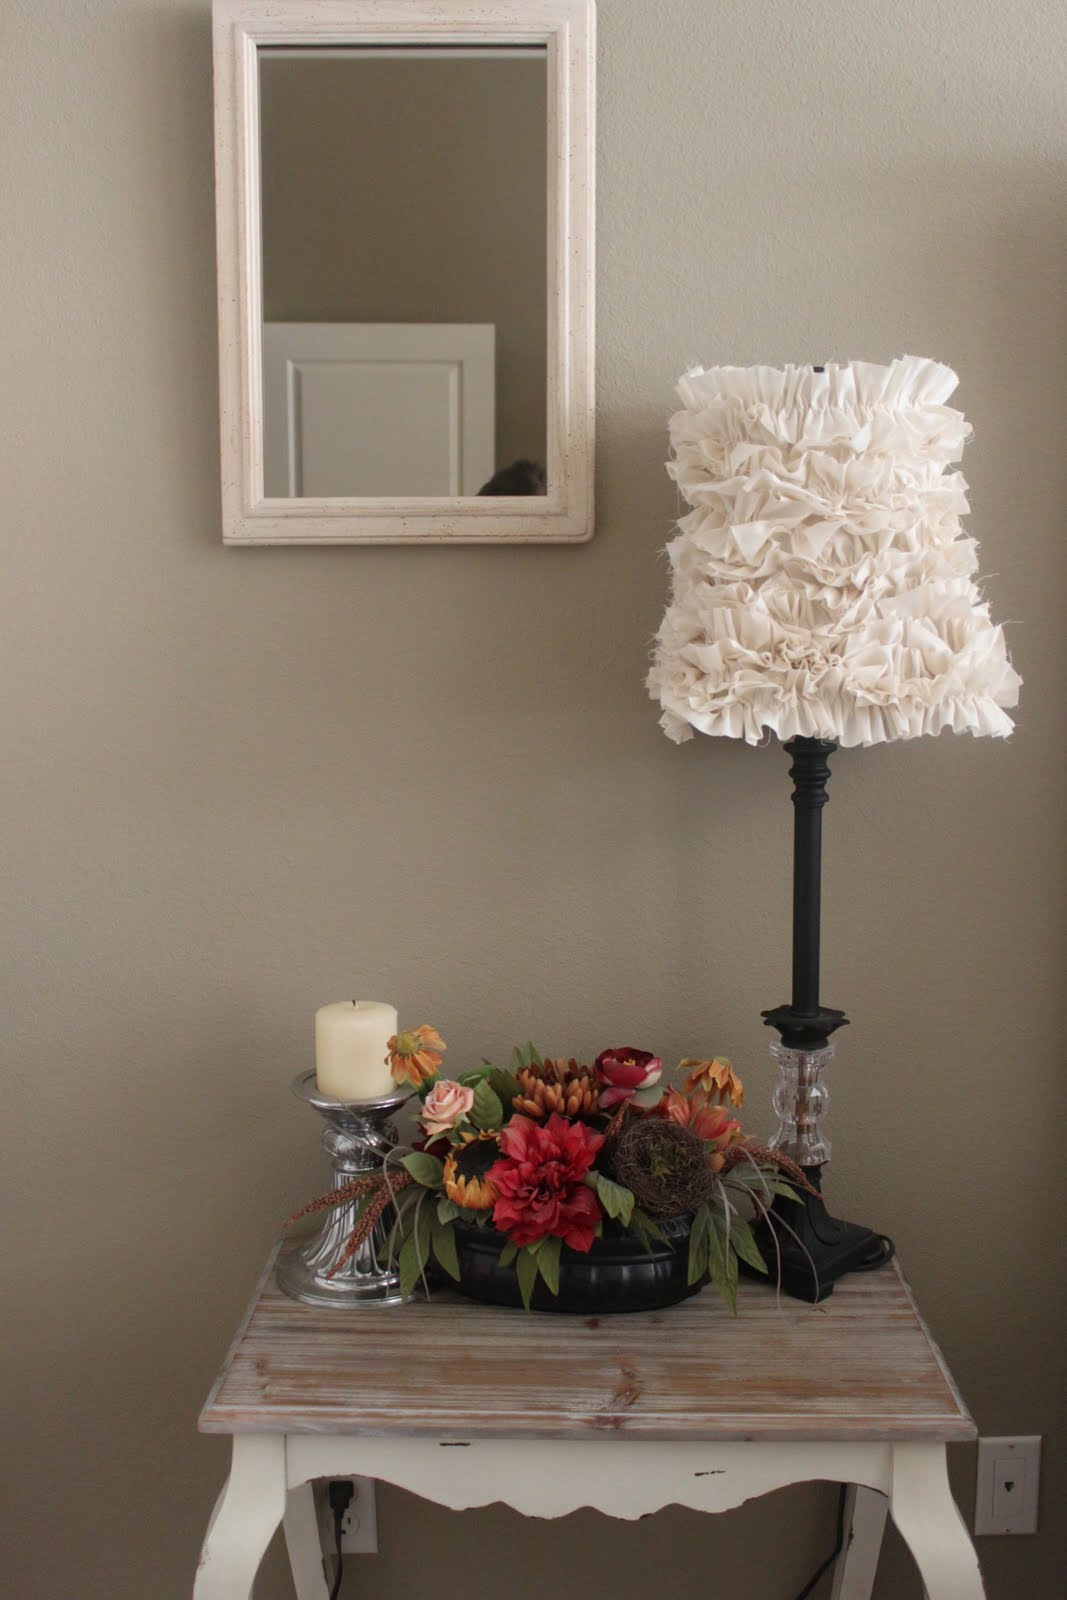 crafty texas girls crafty how to ruffled lamp shade. Black Bedroom Furniture Sets. Home Design Ideas